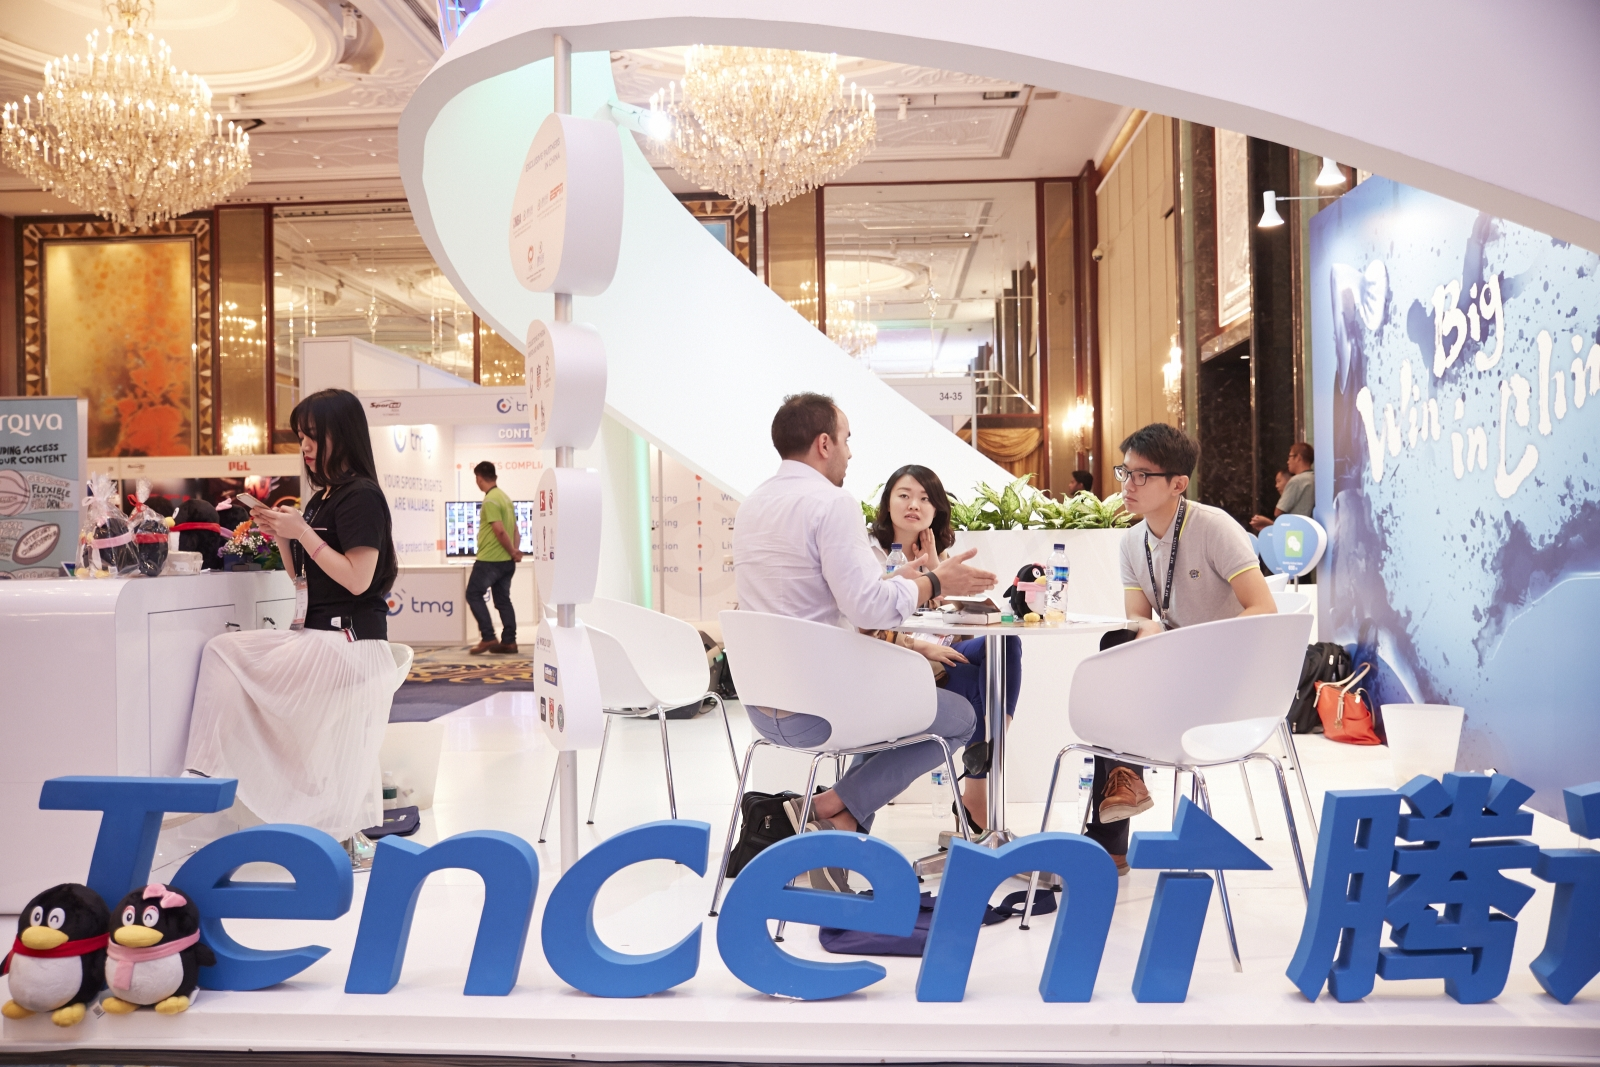 Tencent to merge its QQ Music service with the digital music business of China Music Corporation